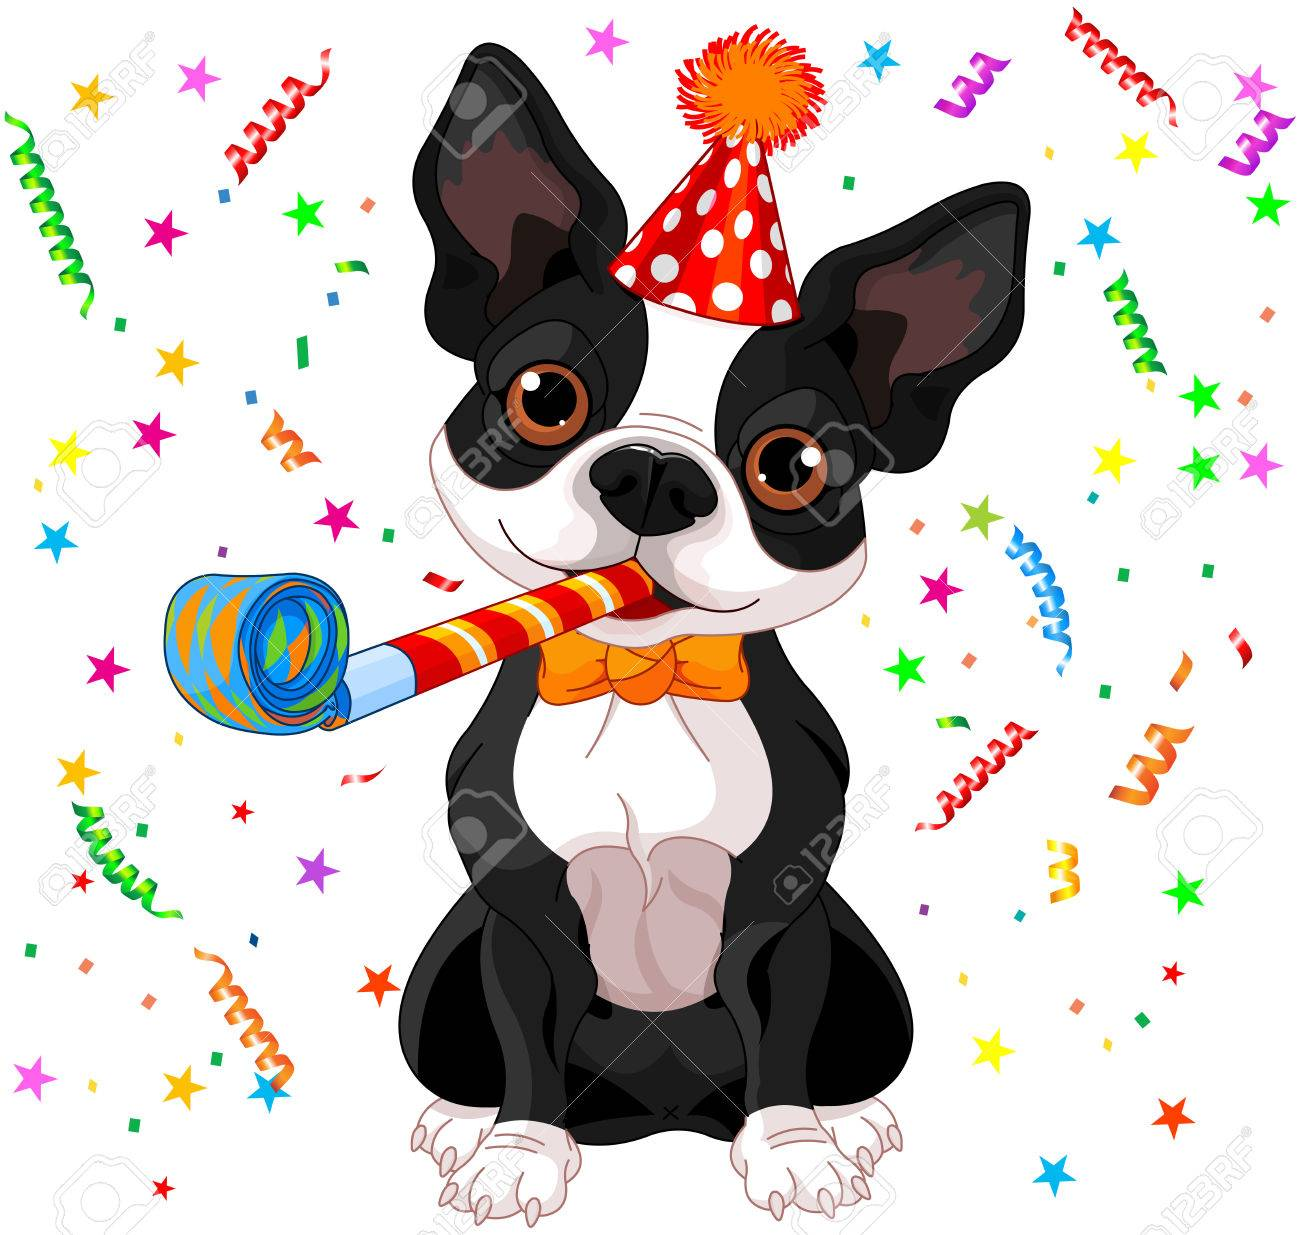 Doonerak's Runners 35588778-illustration-of-cute-boston-terrier-celebrating